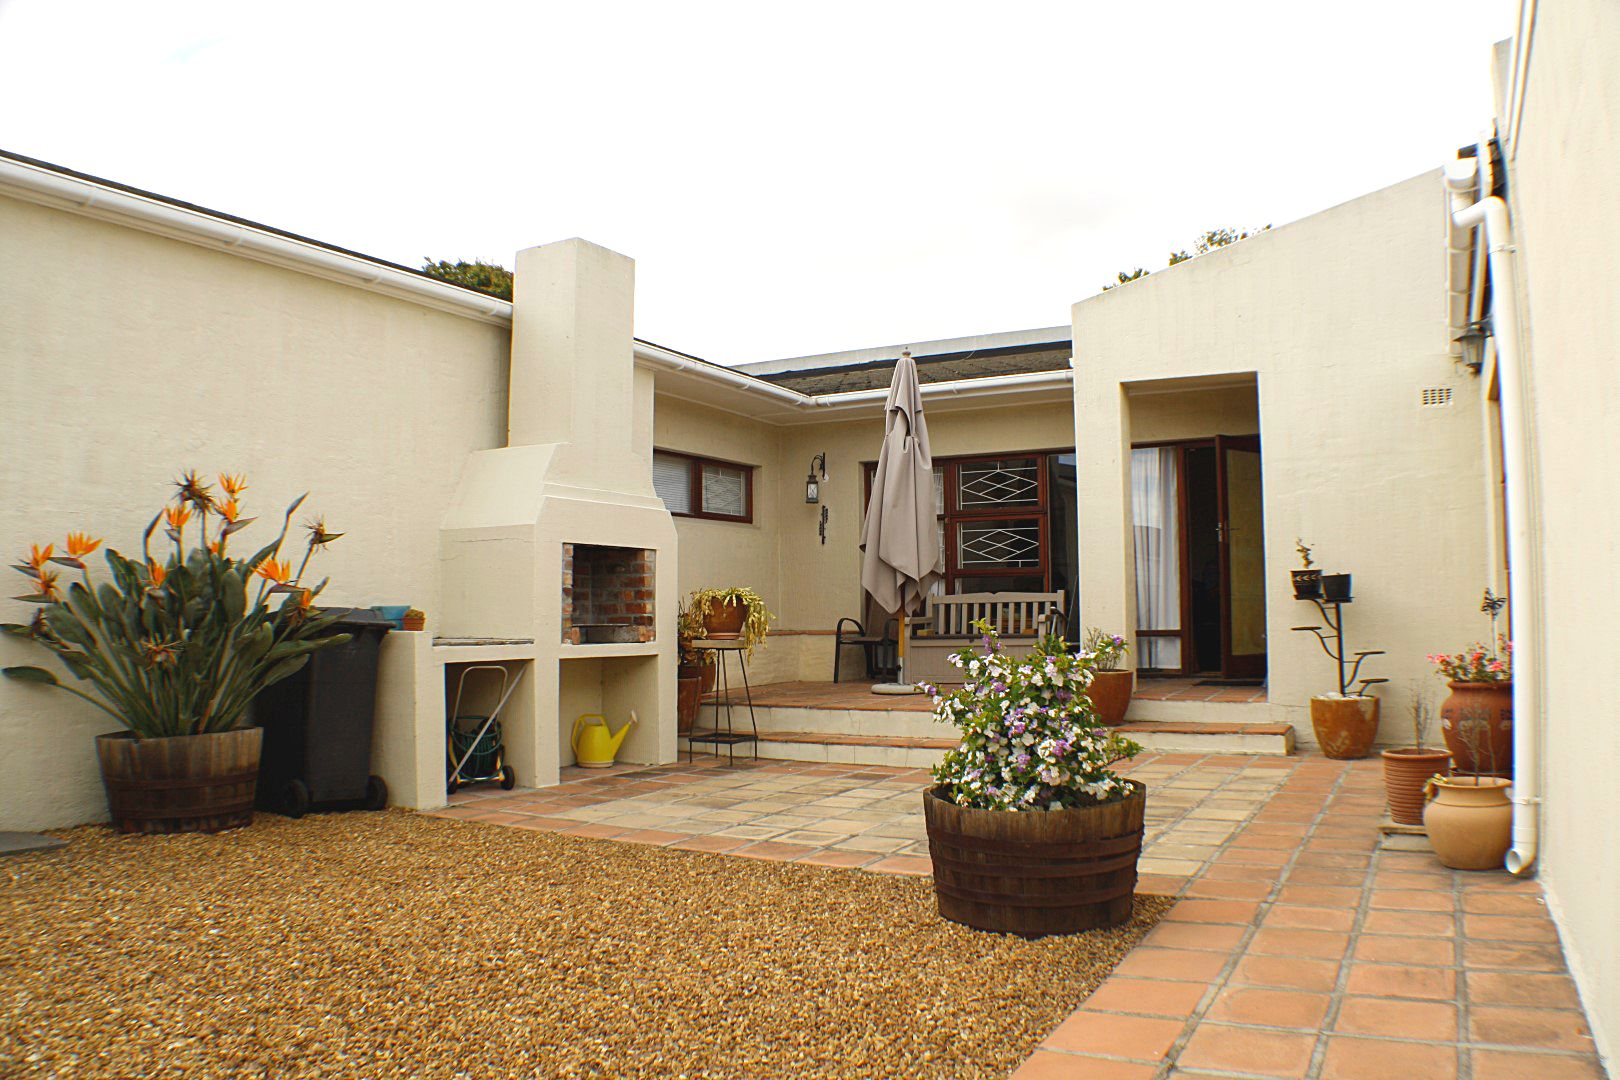 4 BedroomHouse For Sale In Edgemead